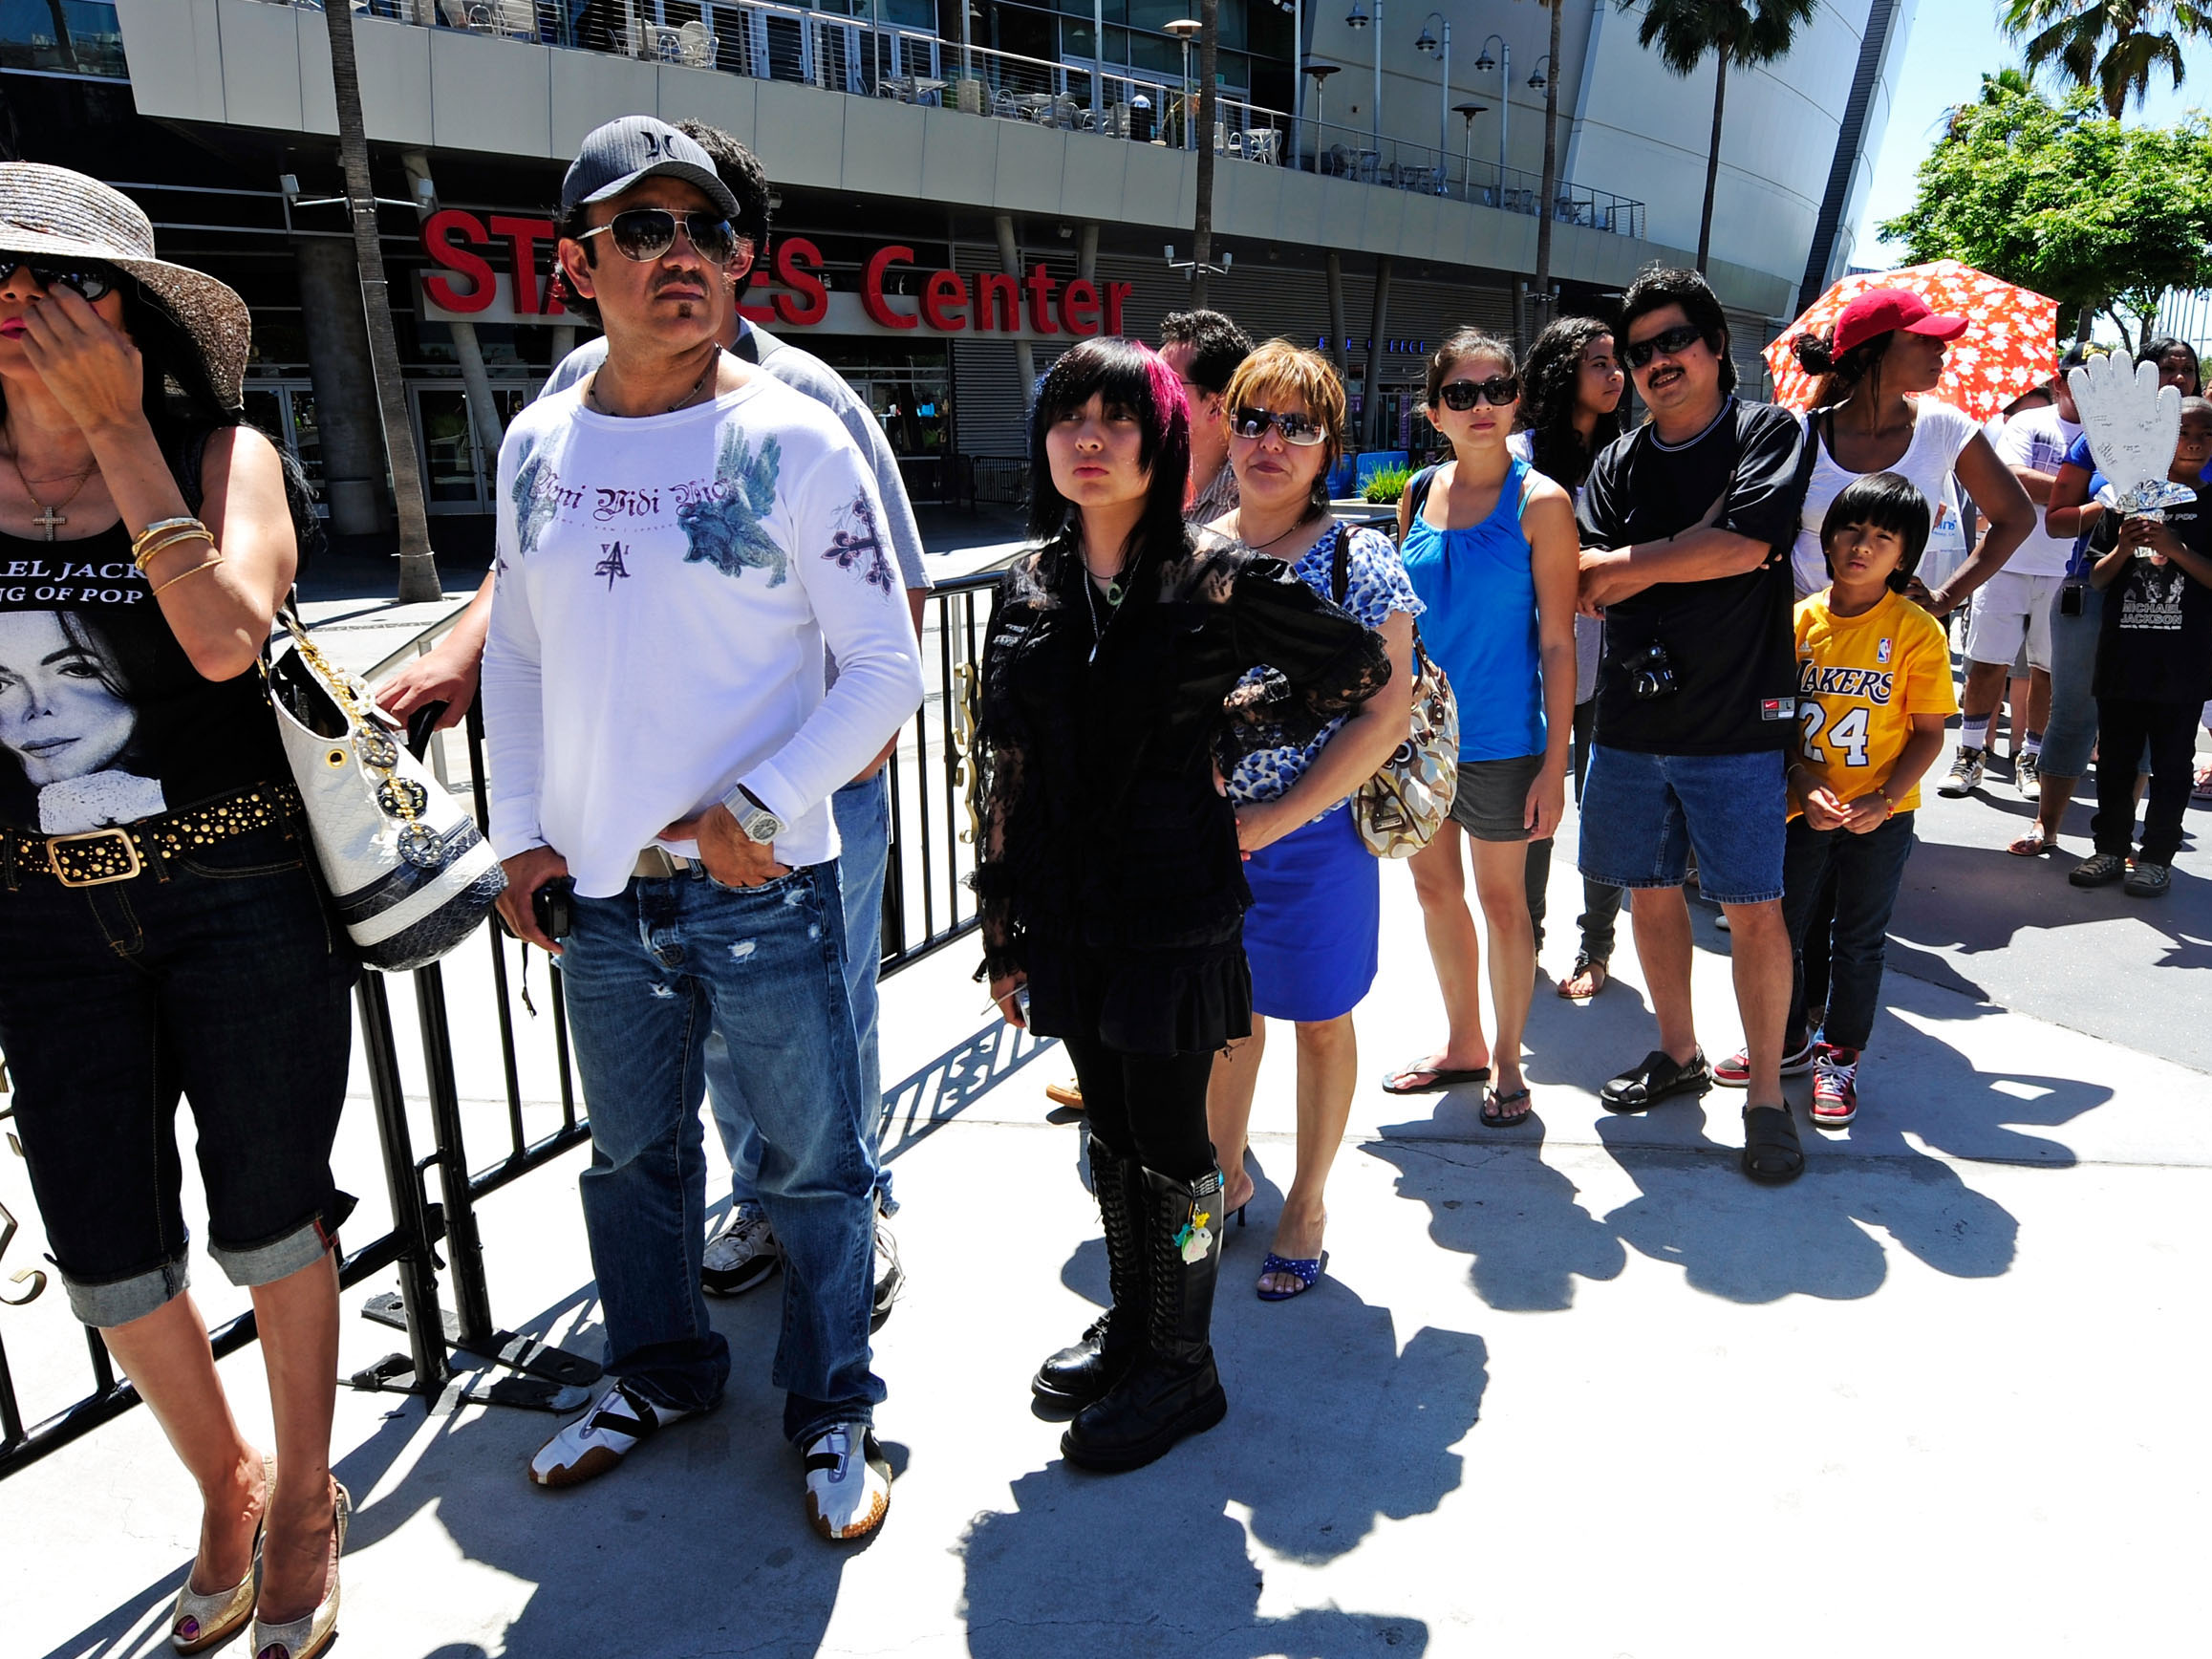 (Getty Images) Fans wait to sign a large banner in memory of pop star Michael Jackson at Staples Center on July 5, 2009 in Los Angeles, California.